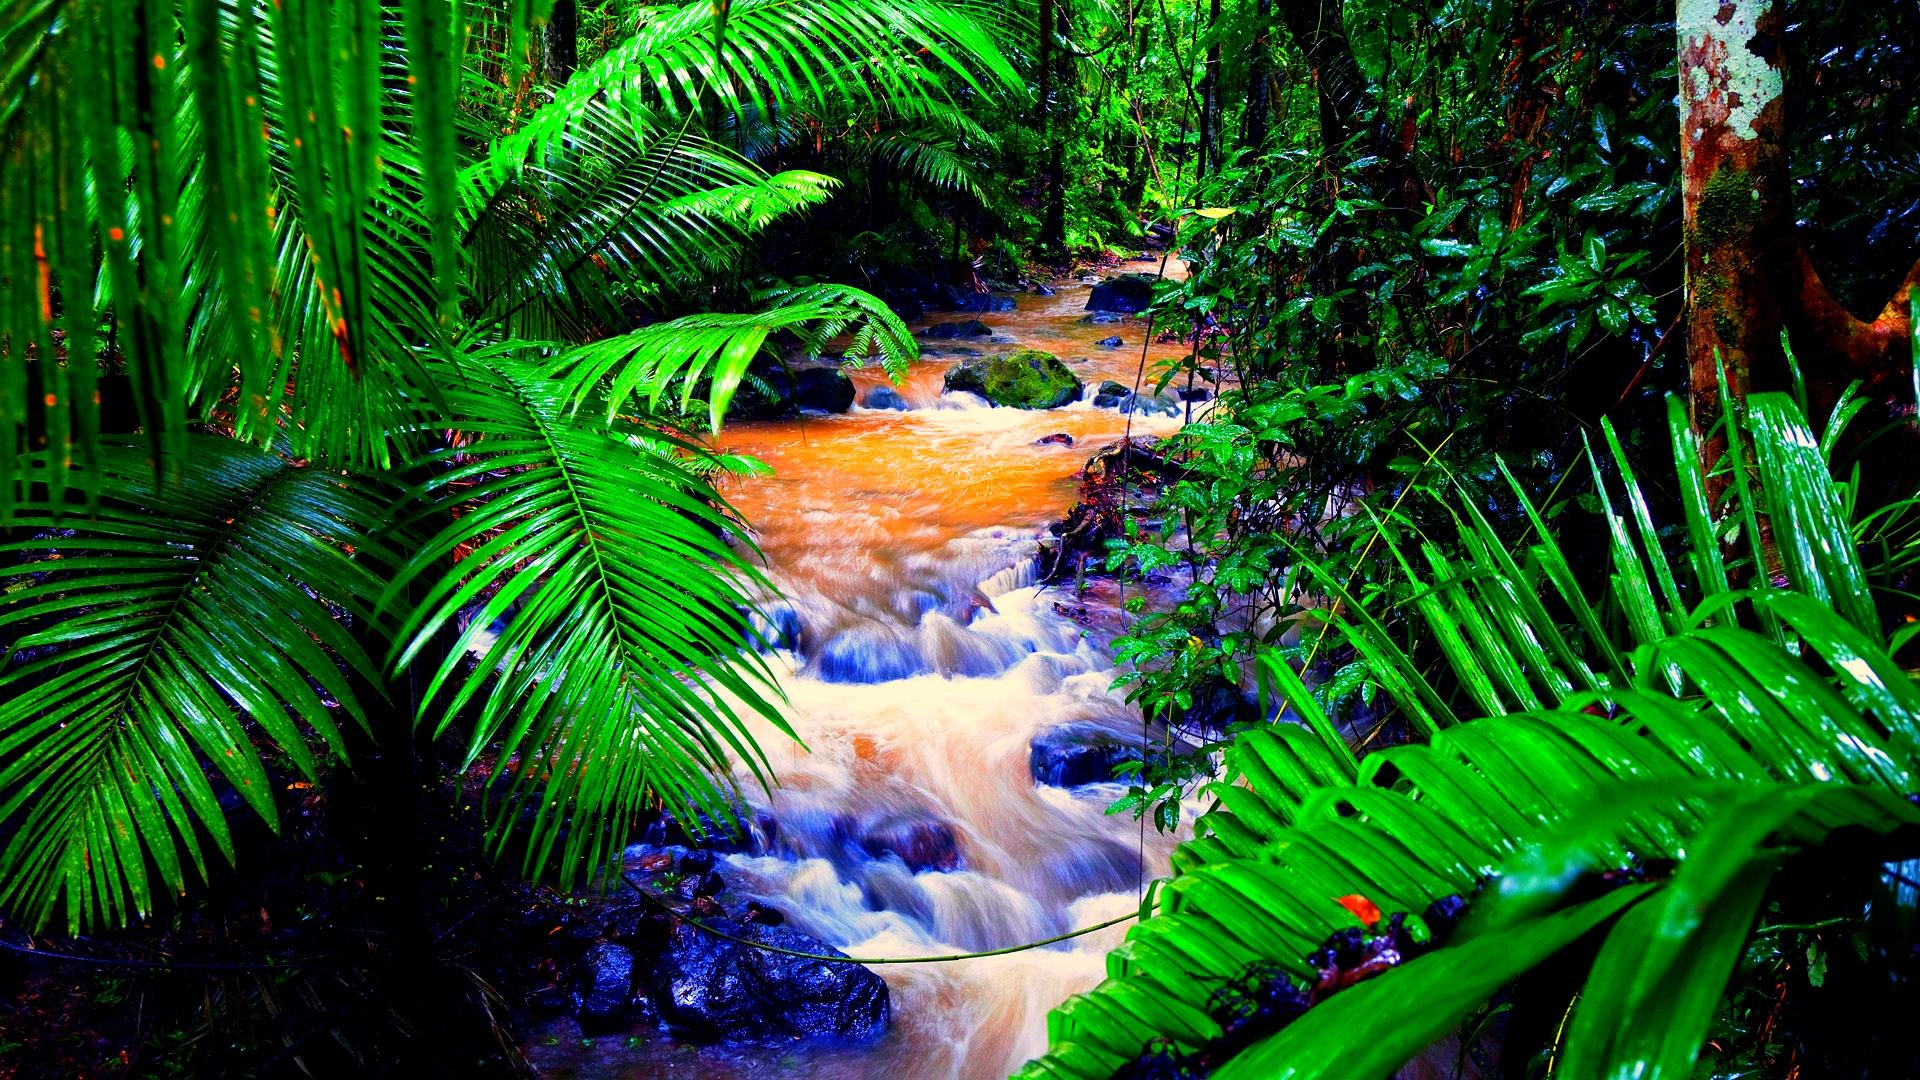 Rainforest HD desktop wallpaper : High Definition : Fullscreen 1920x1080